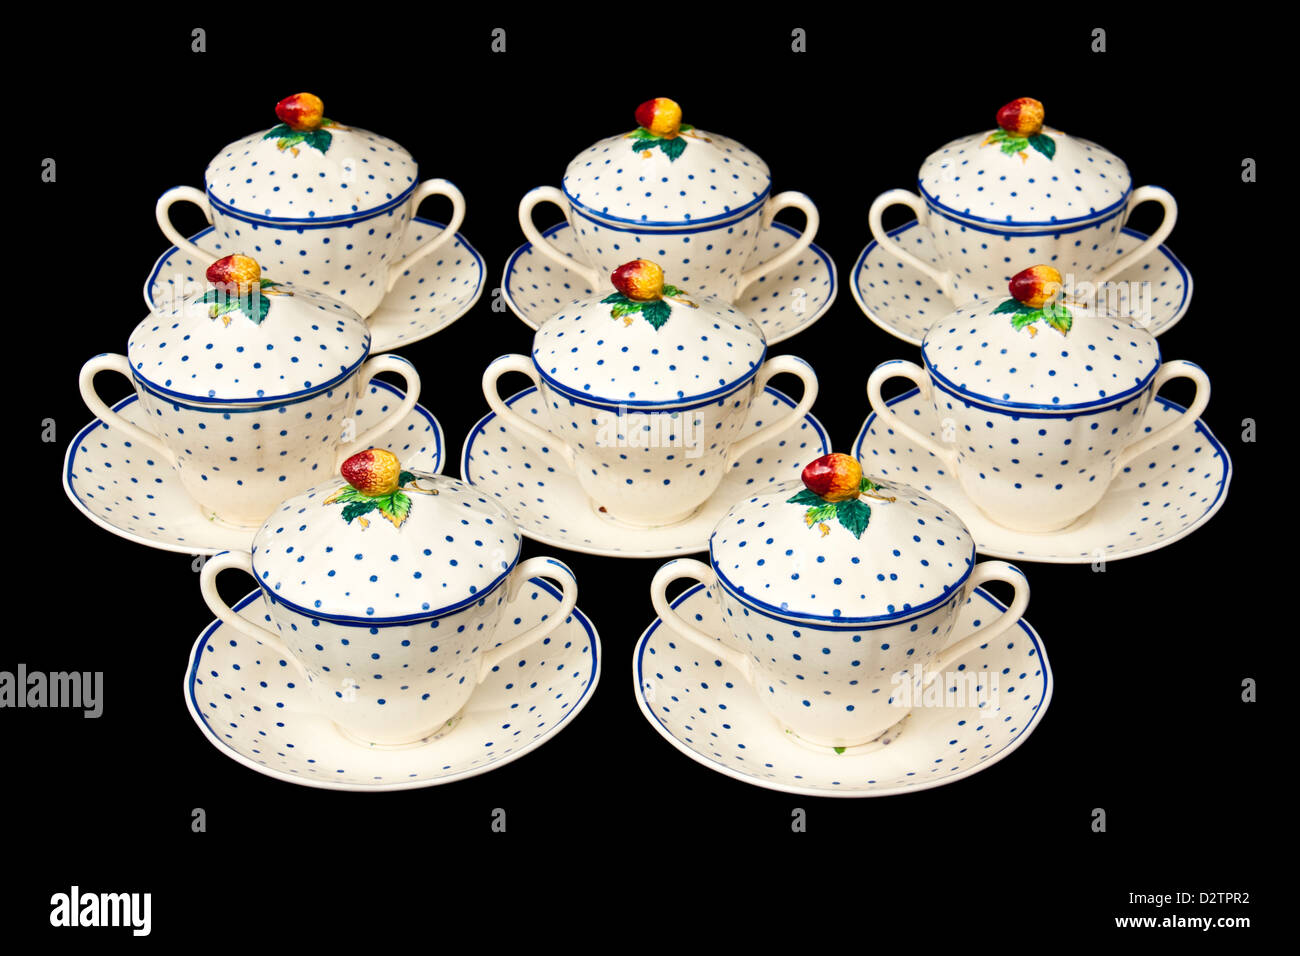 Set of 1930's Copeland Spode 'Polka Dot' covered drinking chocolate cups and saucers - Stock Image